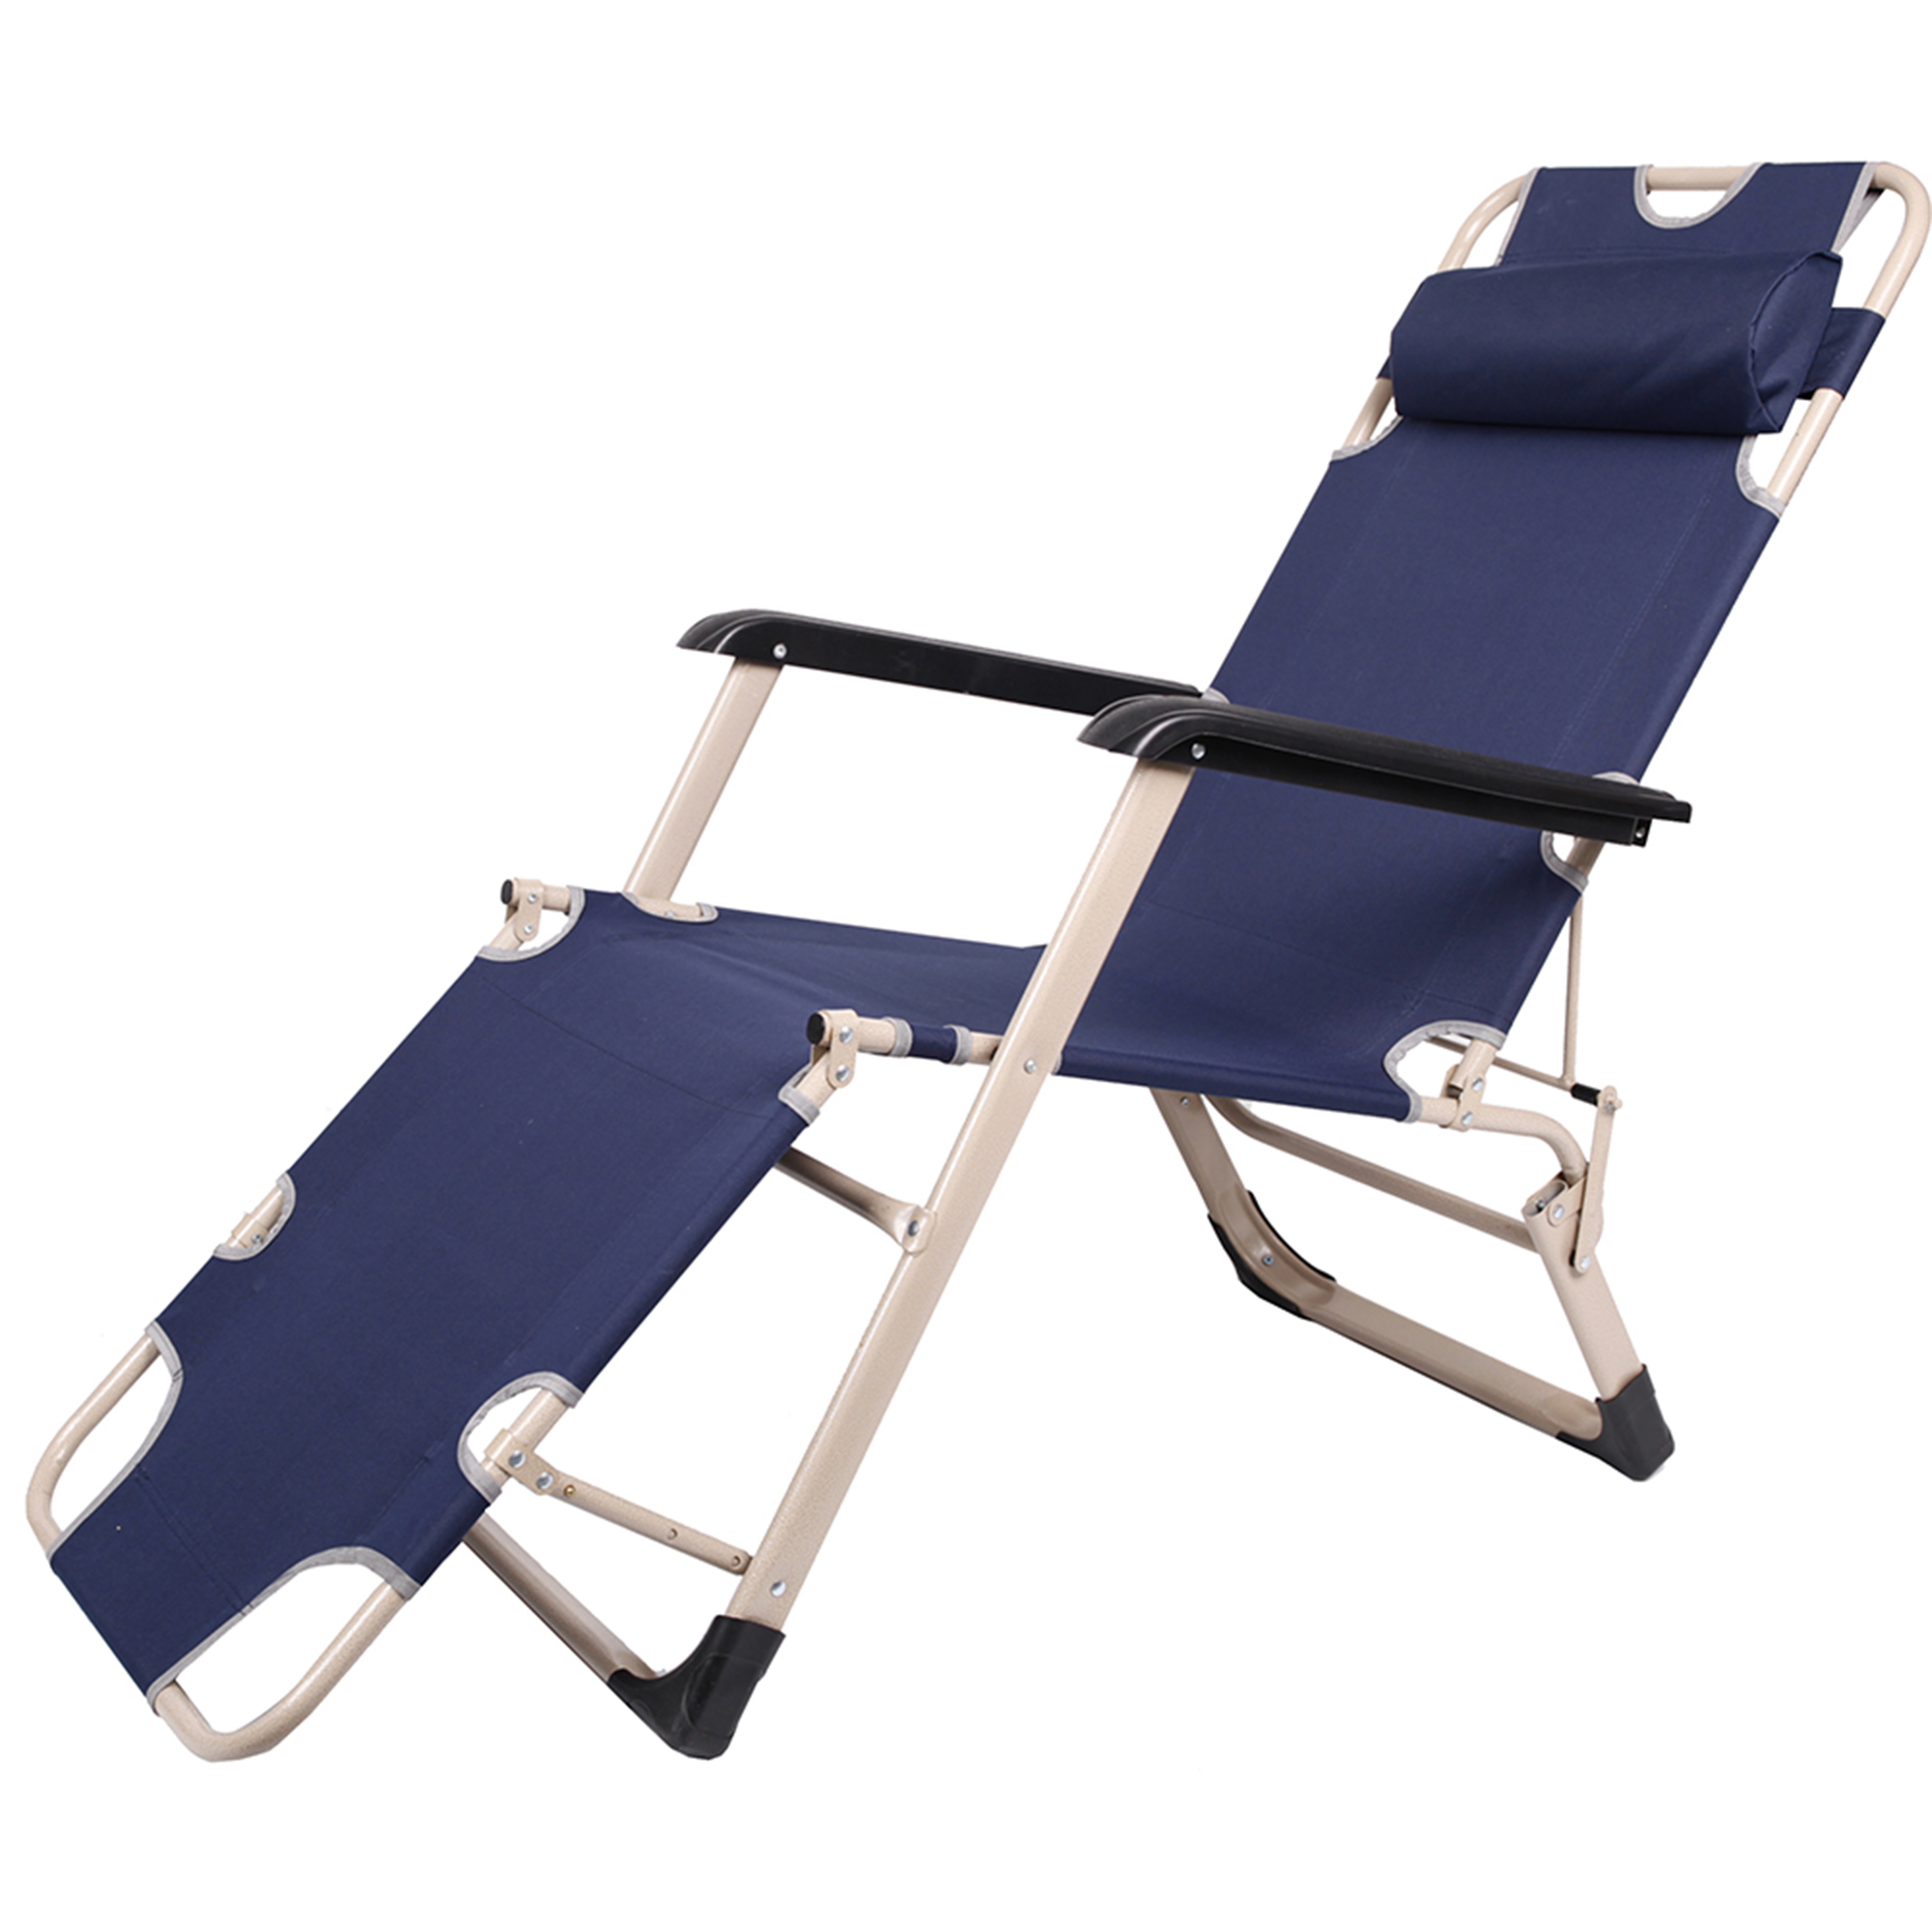 Karmas Product Folding Reclining Armchair Outdoor Patio Beach Chaise Lounge Chair with Pillow,Large